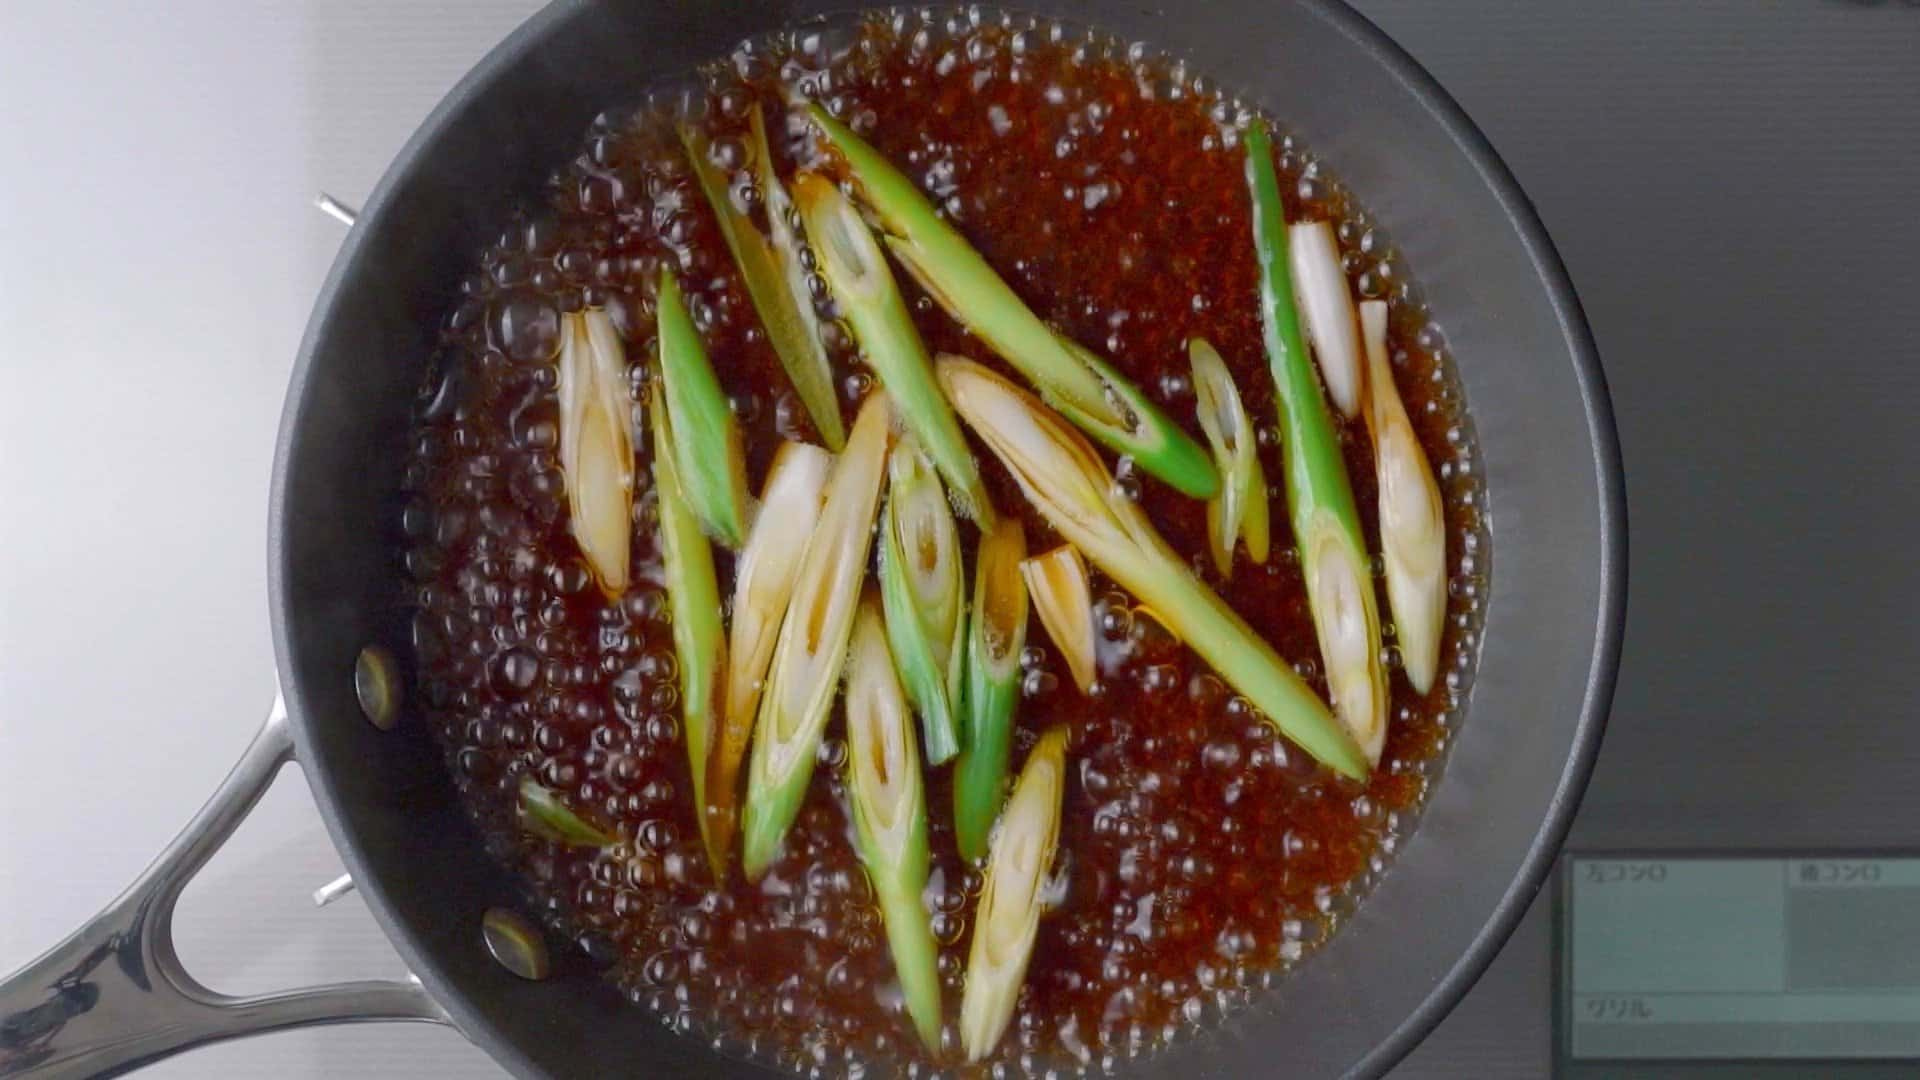 Scallions simmering in dashi stock for beef and egg rice bowl.